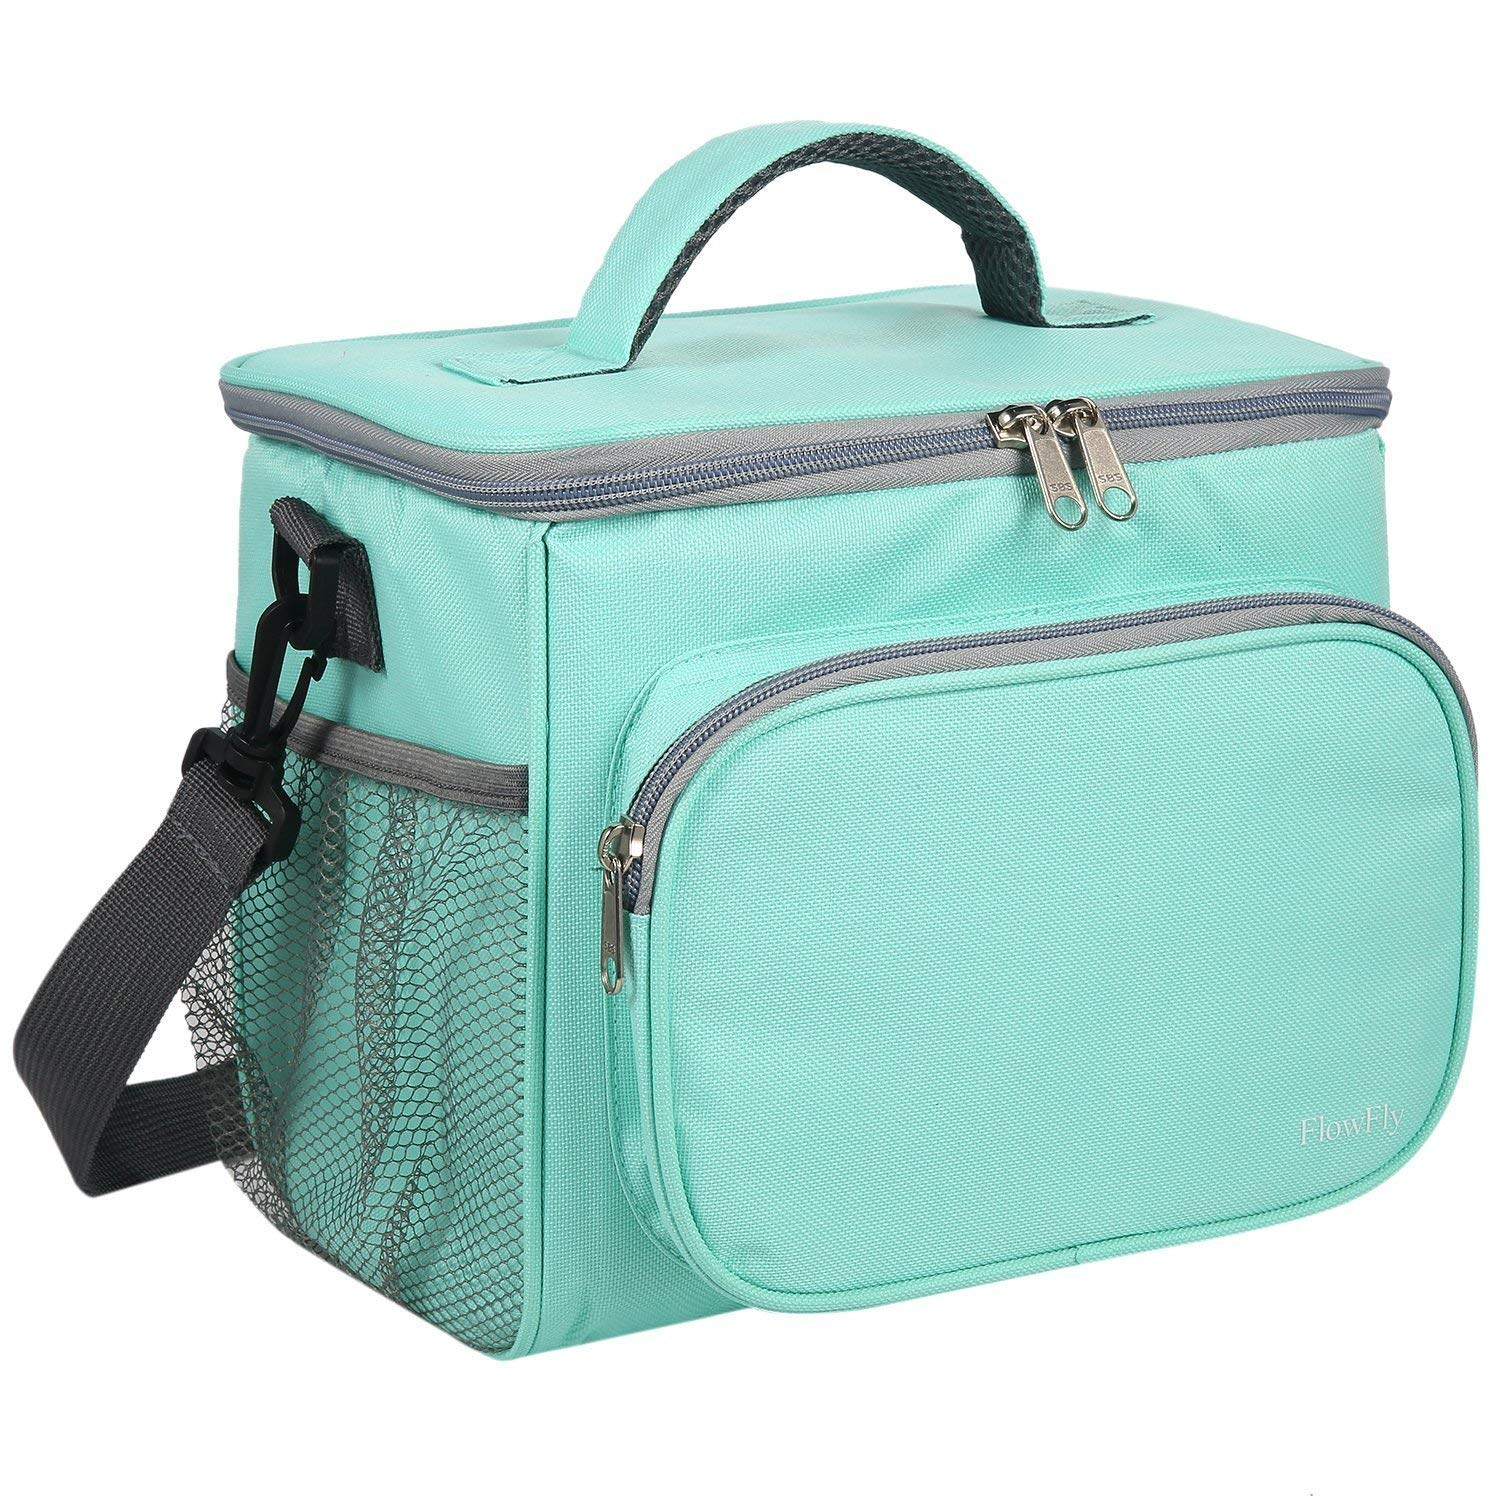 Lunch Bag Large Capacity with Adjustable Shoulder Strap Tote Box Soft Reusable Leakproof Liner For Adults/Men/Kid/Women Insulated Fashionable Travel/Work/Picnic/Camping/School Green